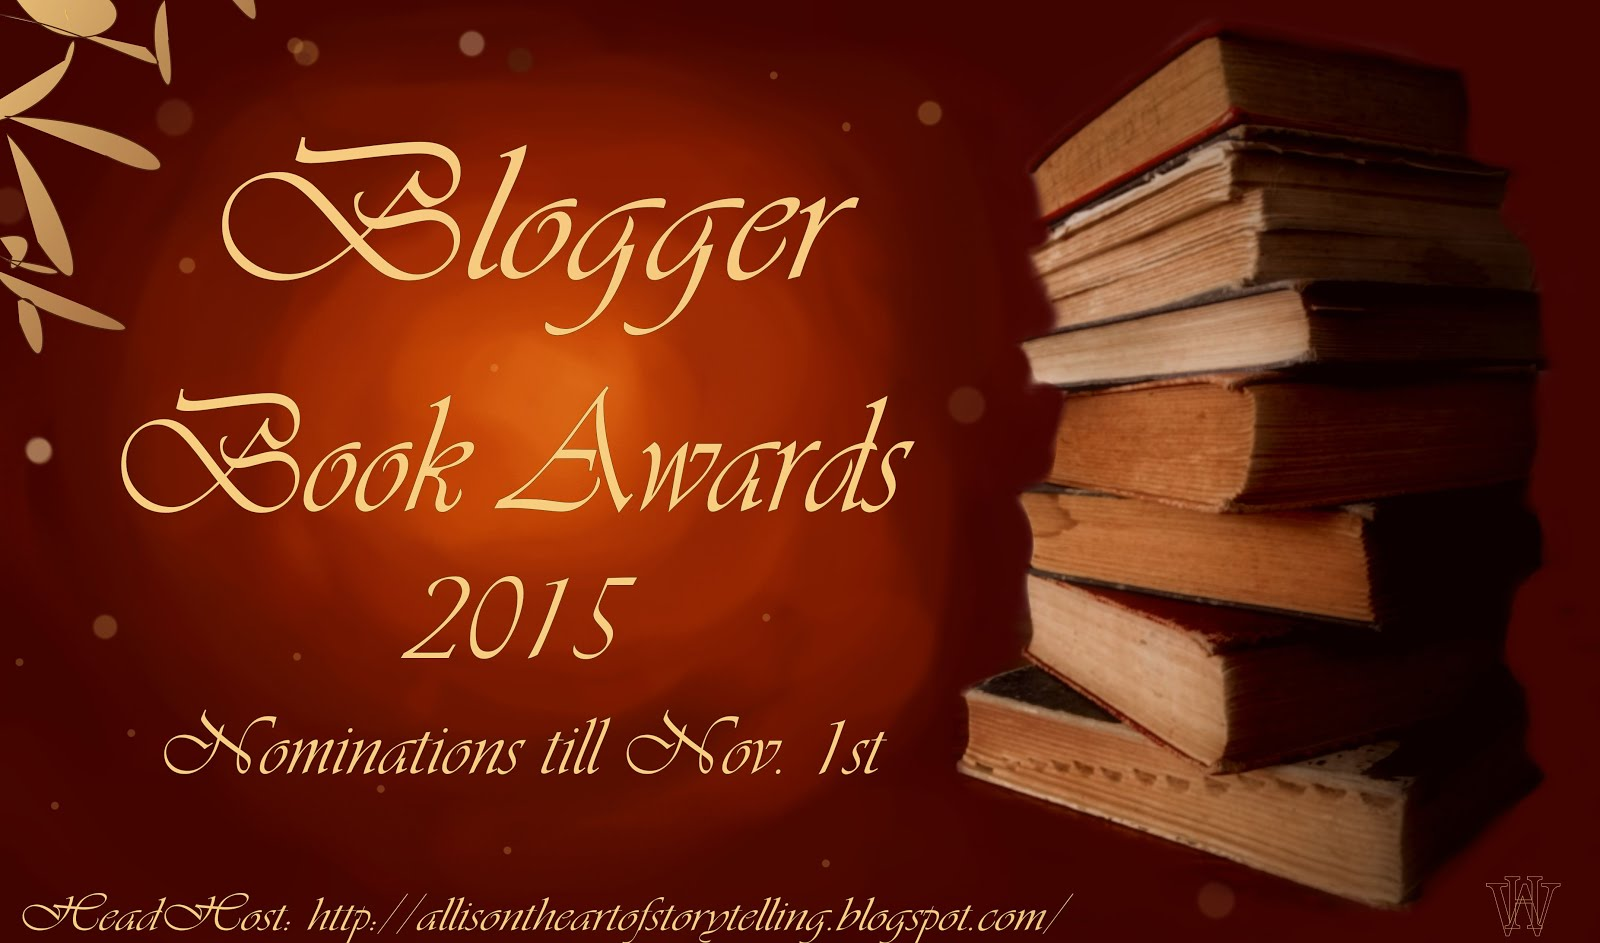 2015 Blogger Awards!